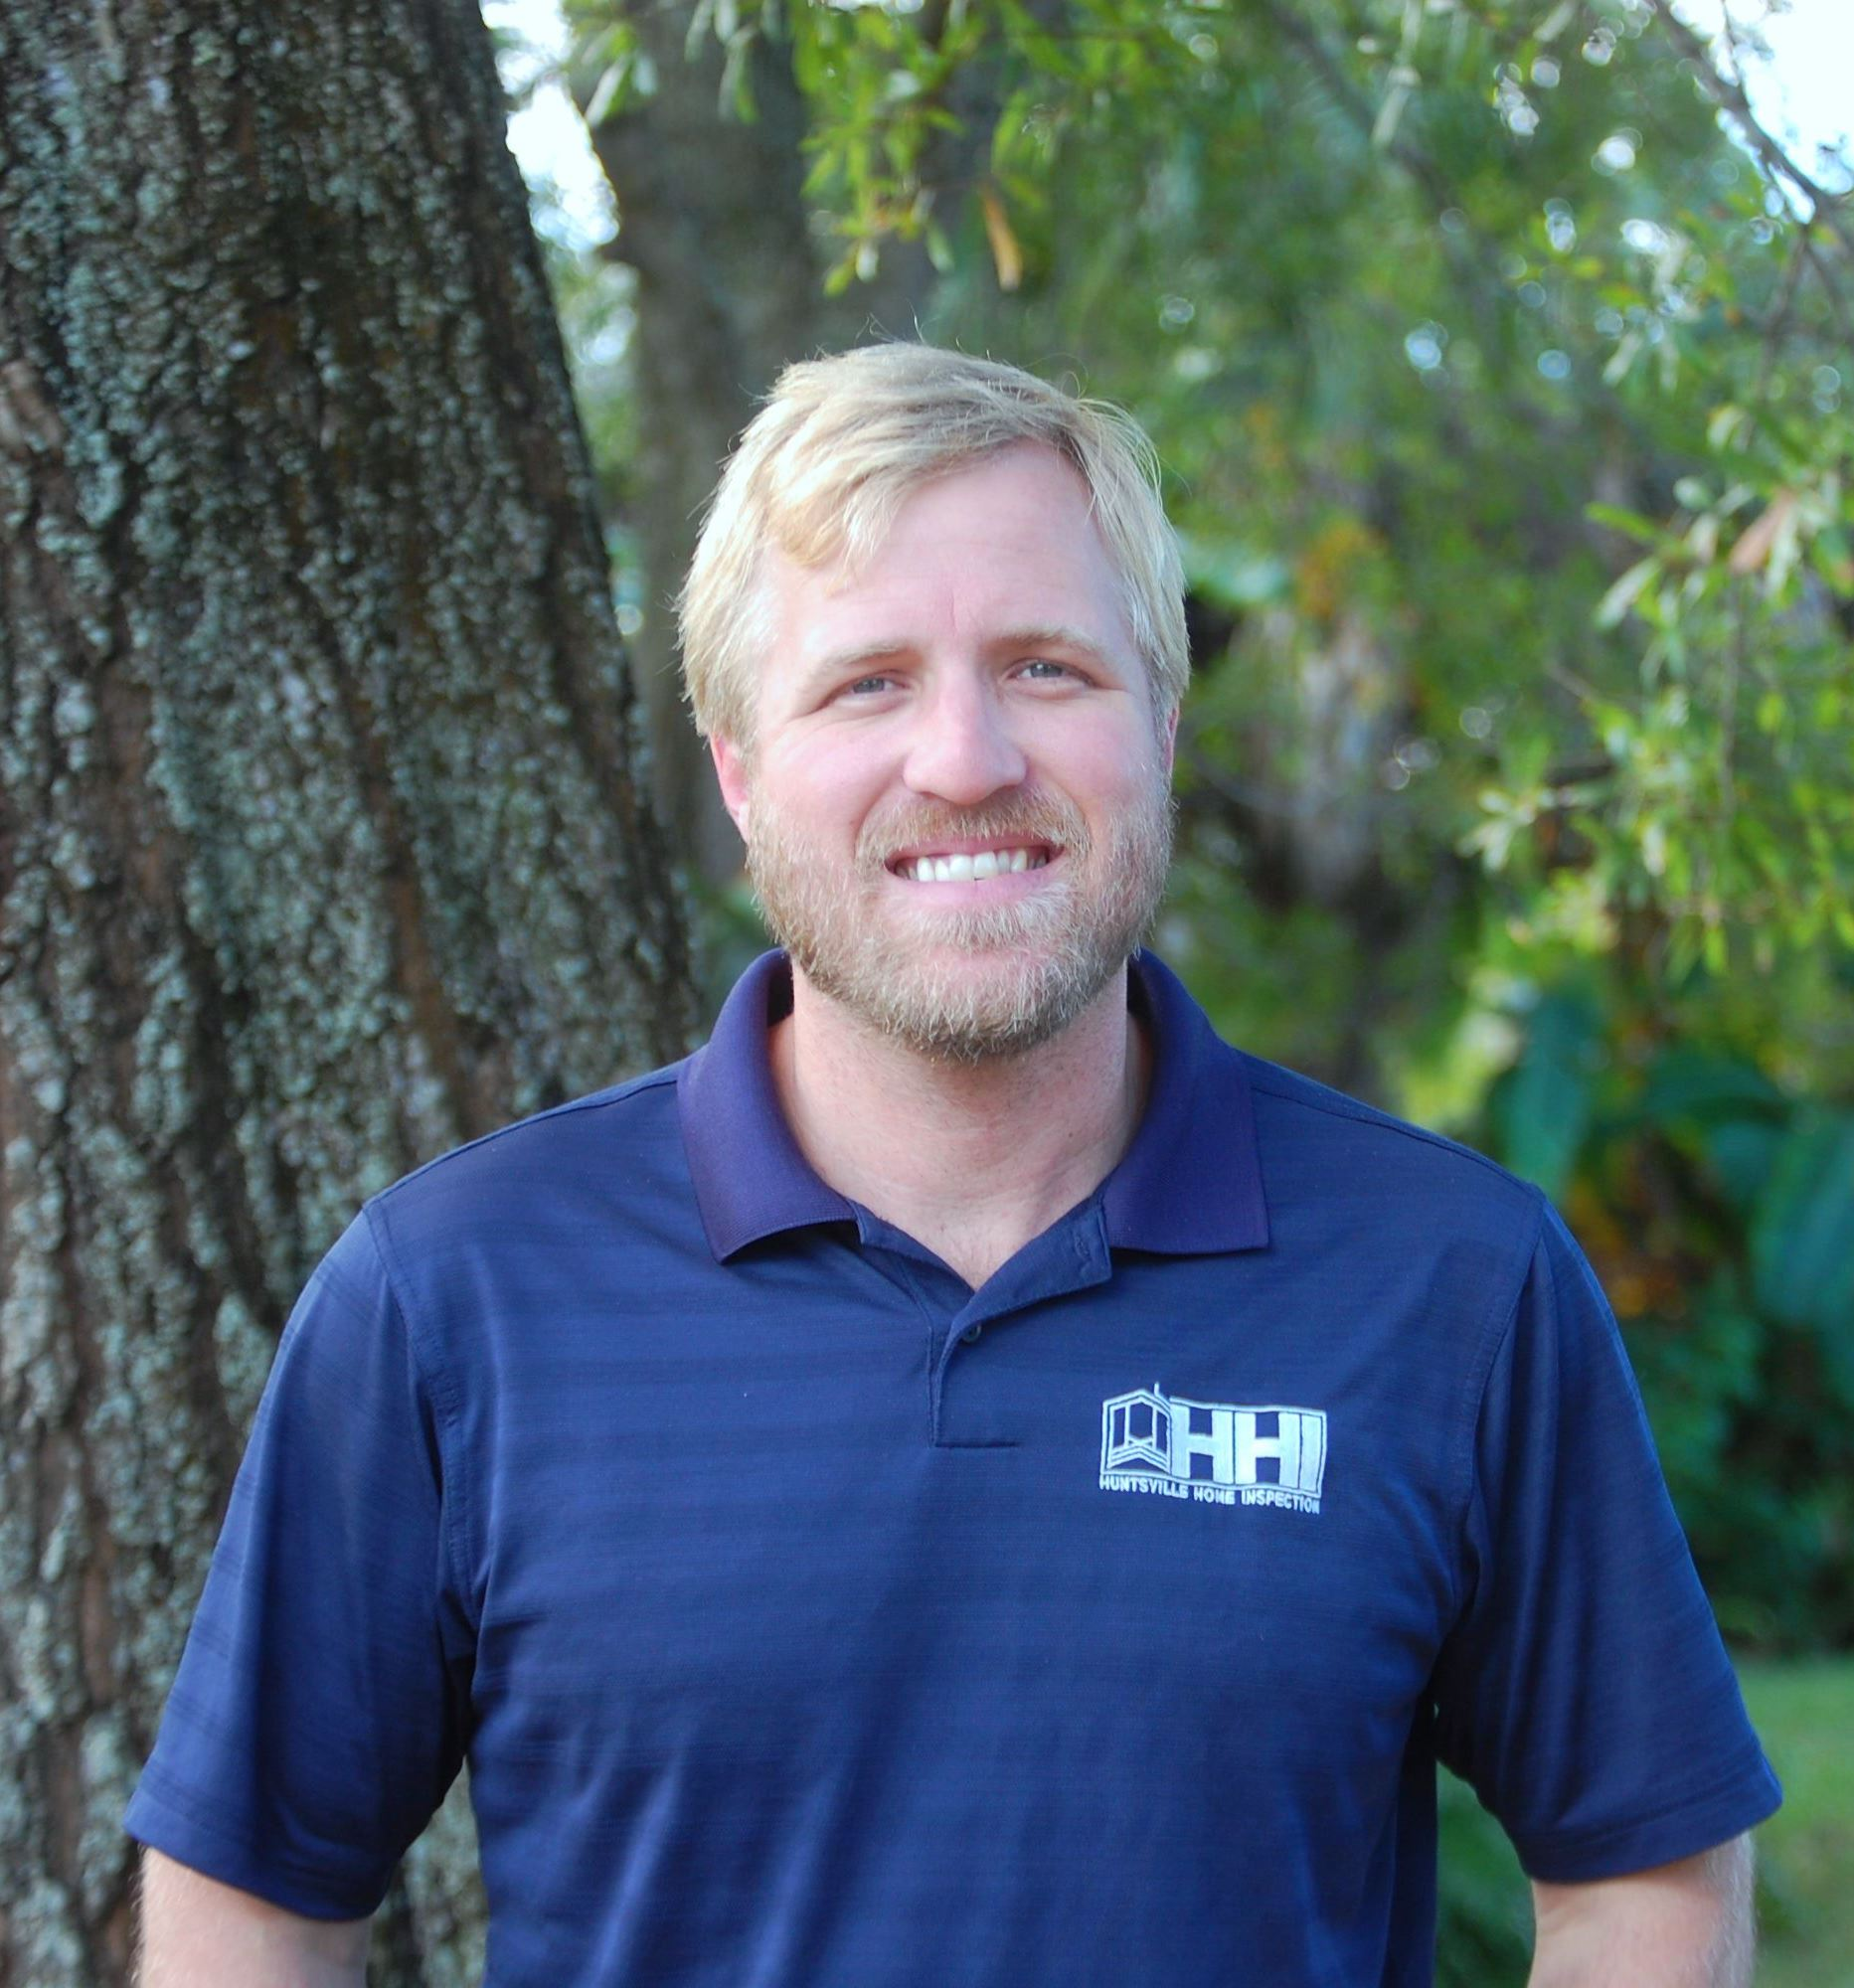 ABOUT - Huntsville Home Inspection was founded by Nathan Goldsmith in 2017. Nathan started his career in real estate 18 years ago. Since then he has managed real estate offices, listed and sold real estate, and invested in real estate. Nathan worked in the senior housing industry for 6 years, managing renovations of multiple retirement communities as well independent living residencies.Nathan is a licensed home inspector in the state of Alabama and has held a Florida Real Estate Brokers license for 14 years. Since 2015, Nathan has operated a construction company in Madison County, Alabama. Additionally, Nathan is the disaster relief/community rehabilitation team leader at Rivertree Church in Owens Cross Roads. When not renovating his own home, Nathan enjoys mountain biking, kayaking, and spending time with his wife and 3 daughters.